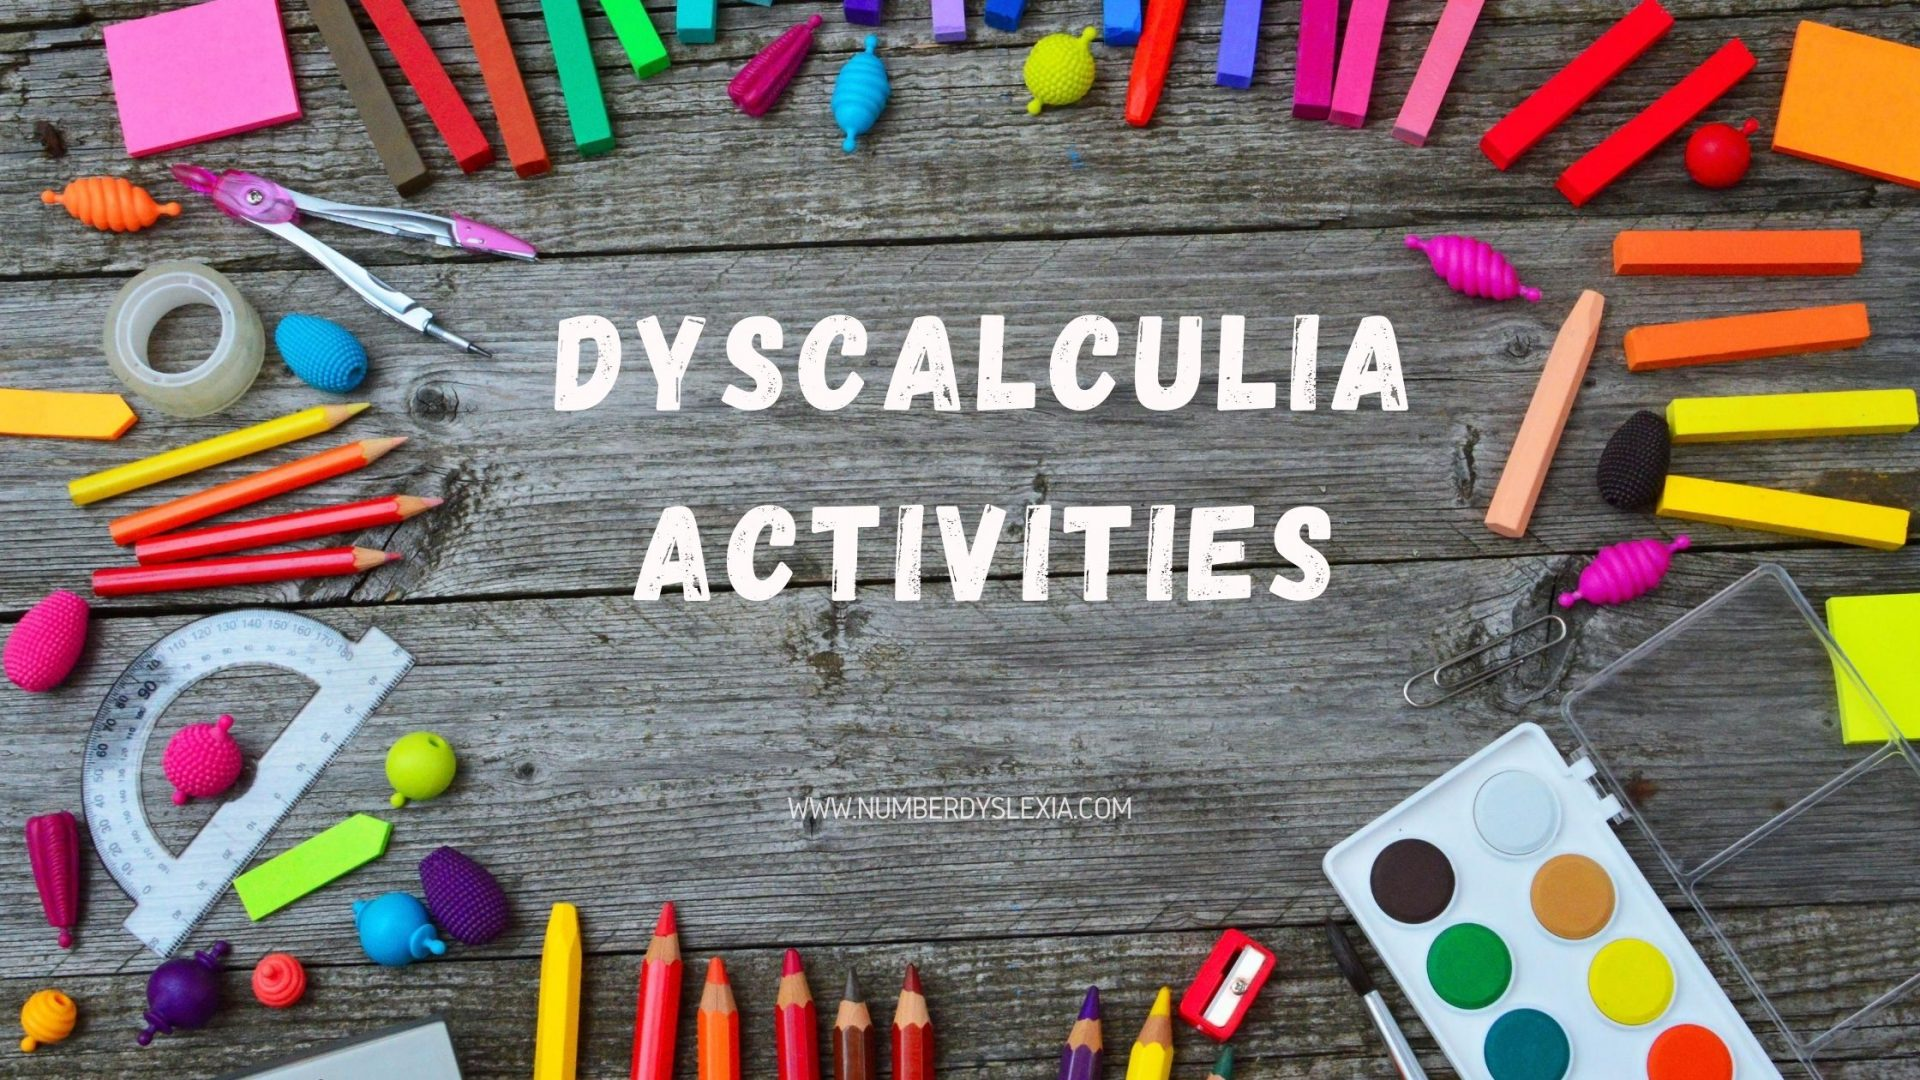 List of dyscalculia activities